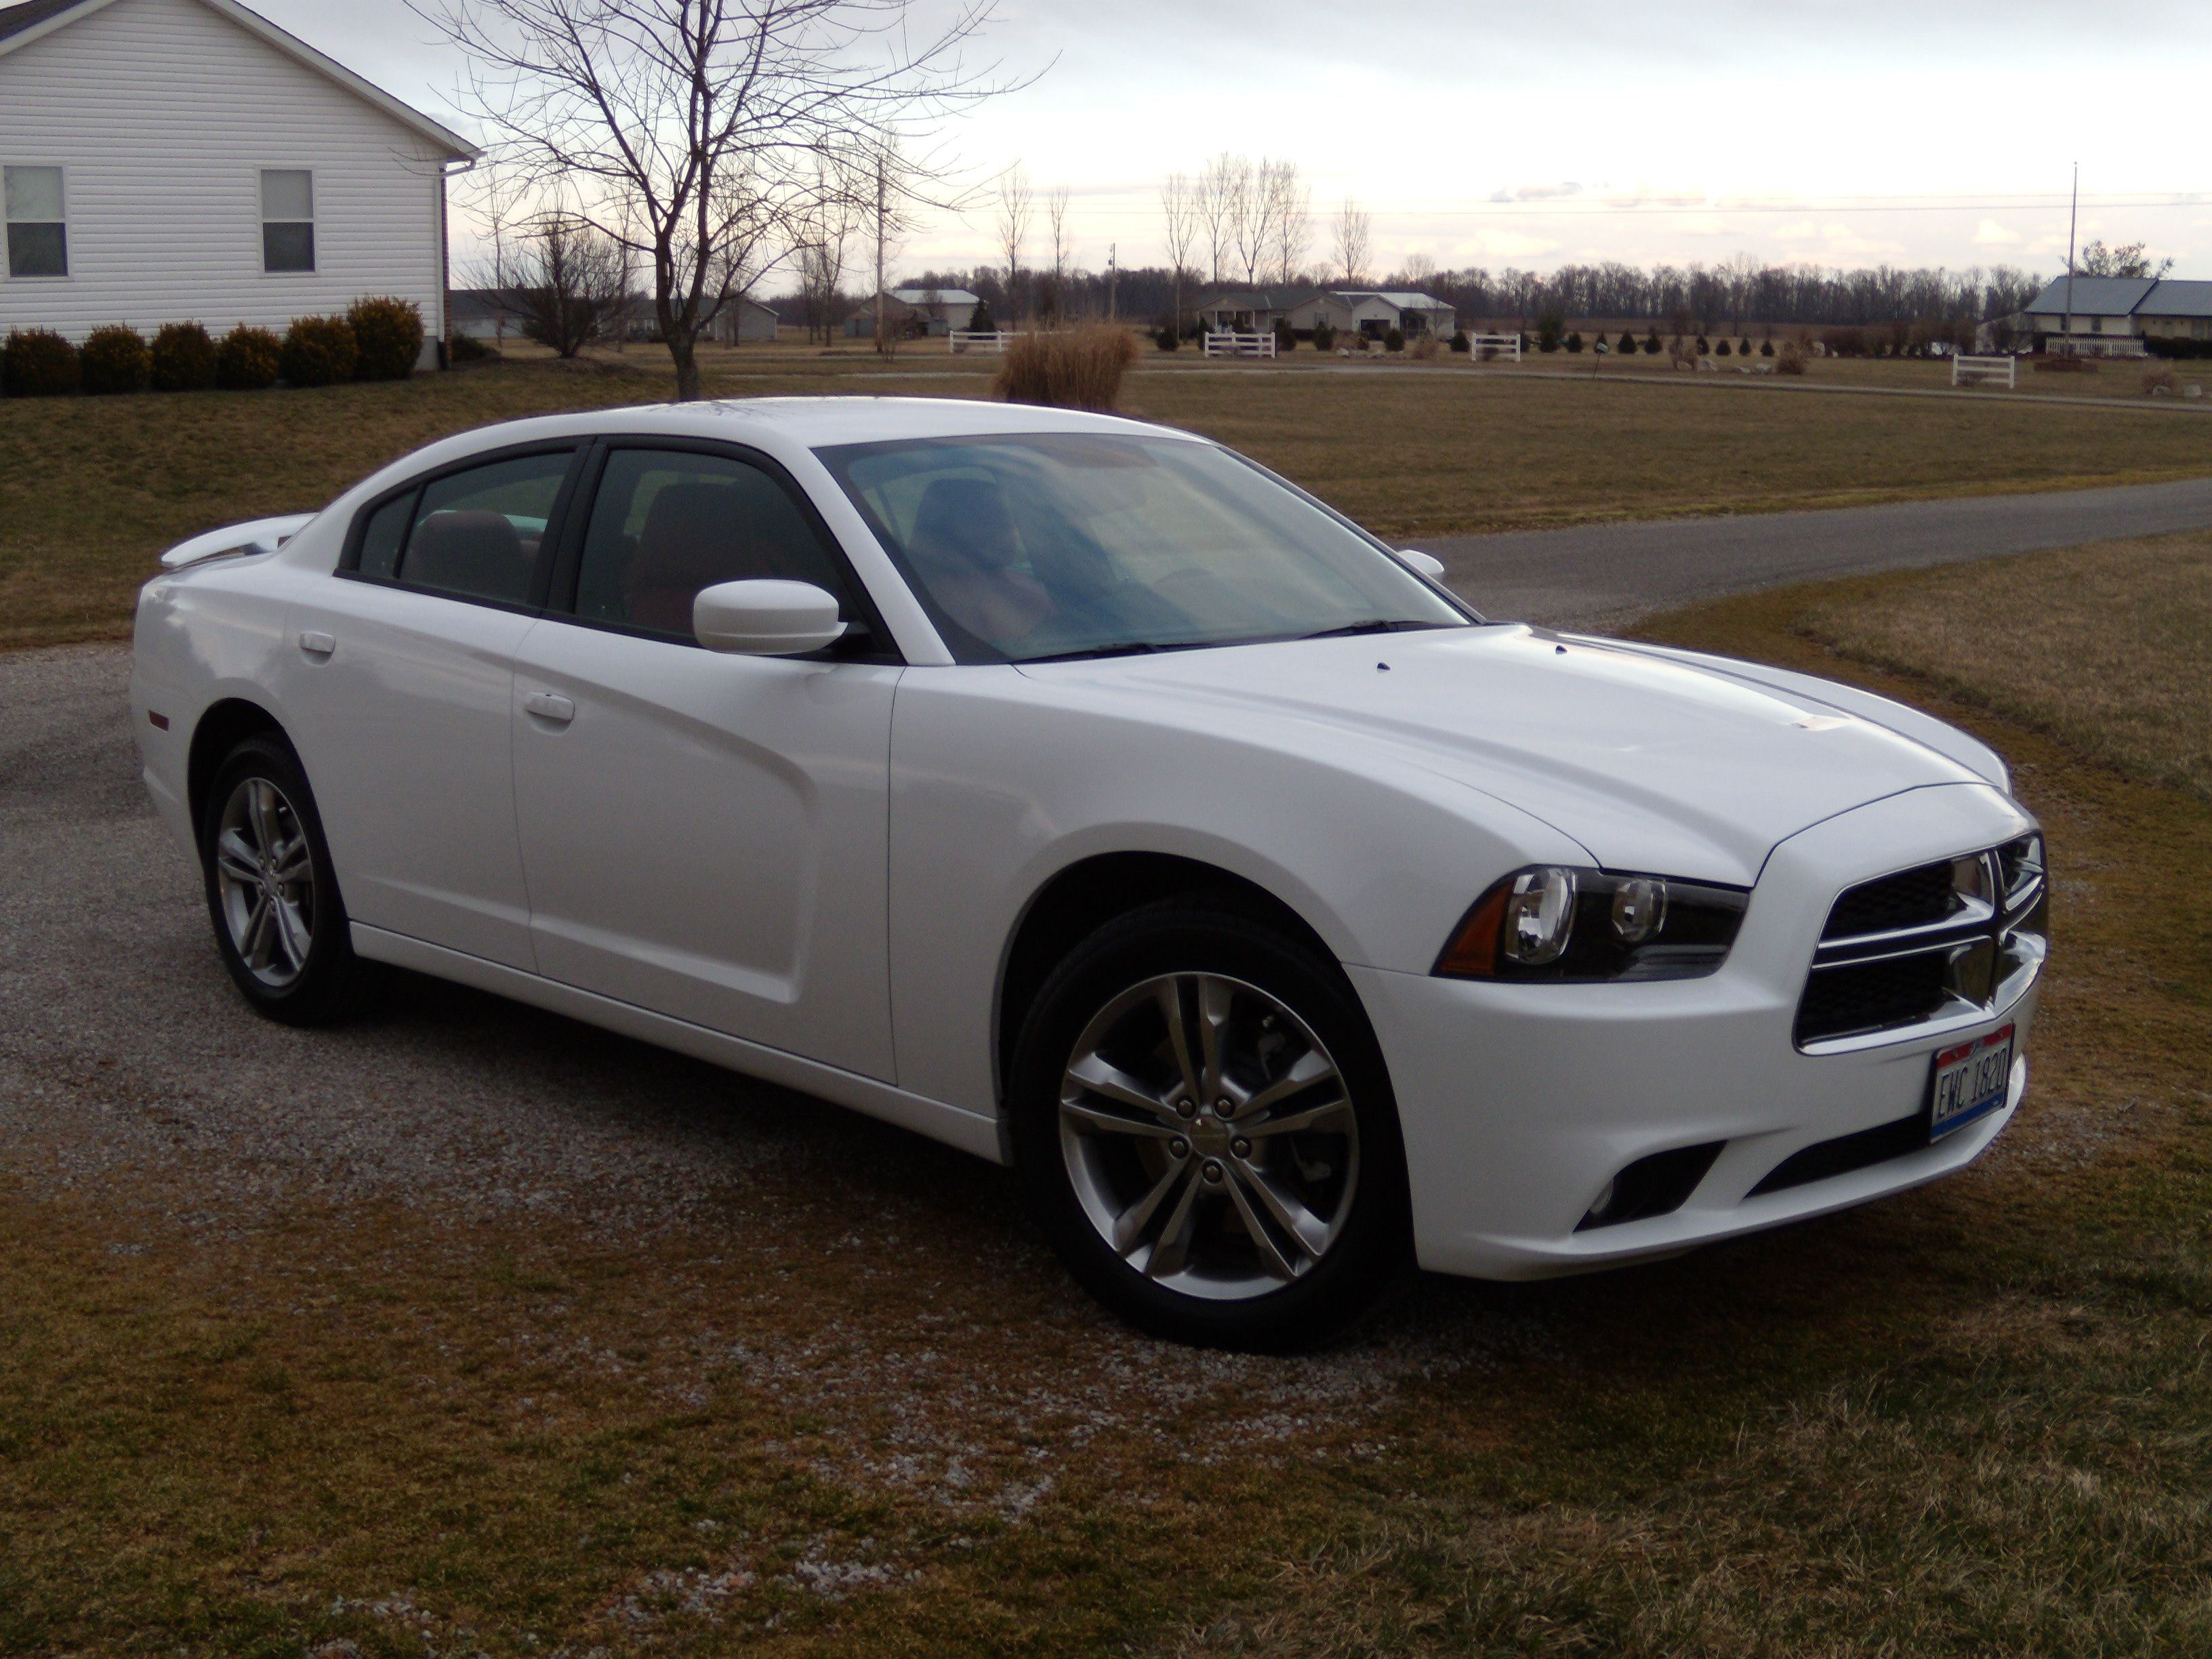 2013 Dodge Charger   White With Red Leather Interior. Love!